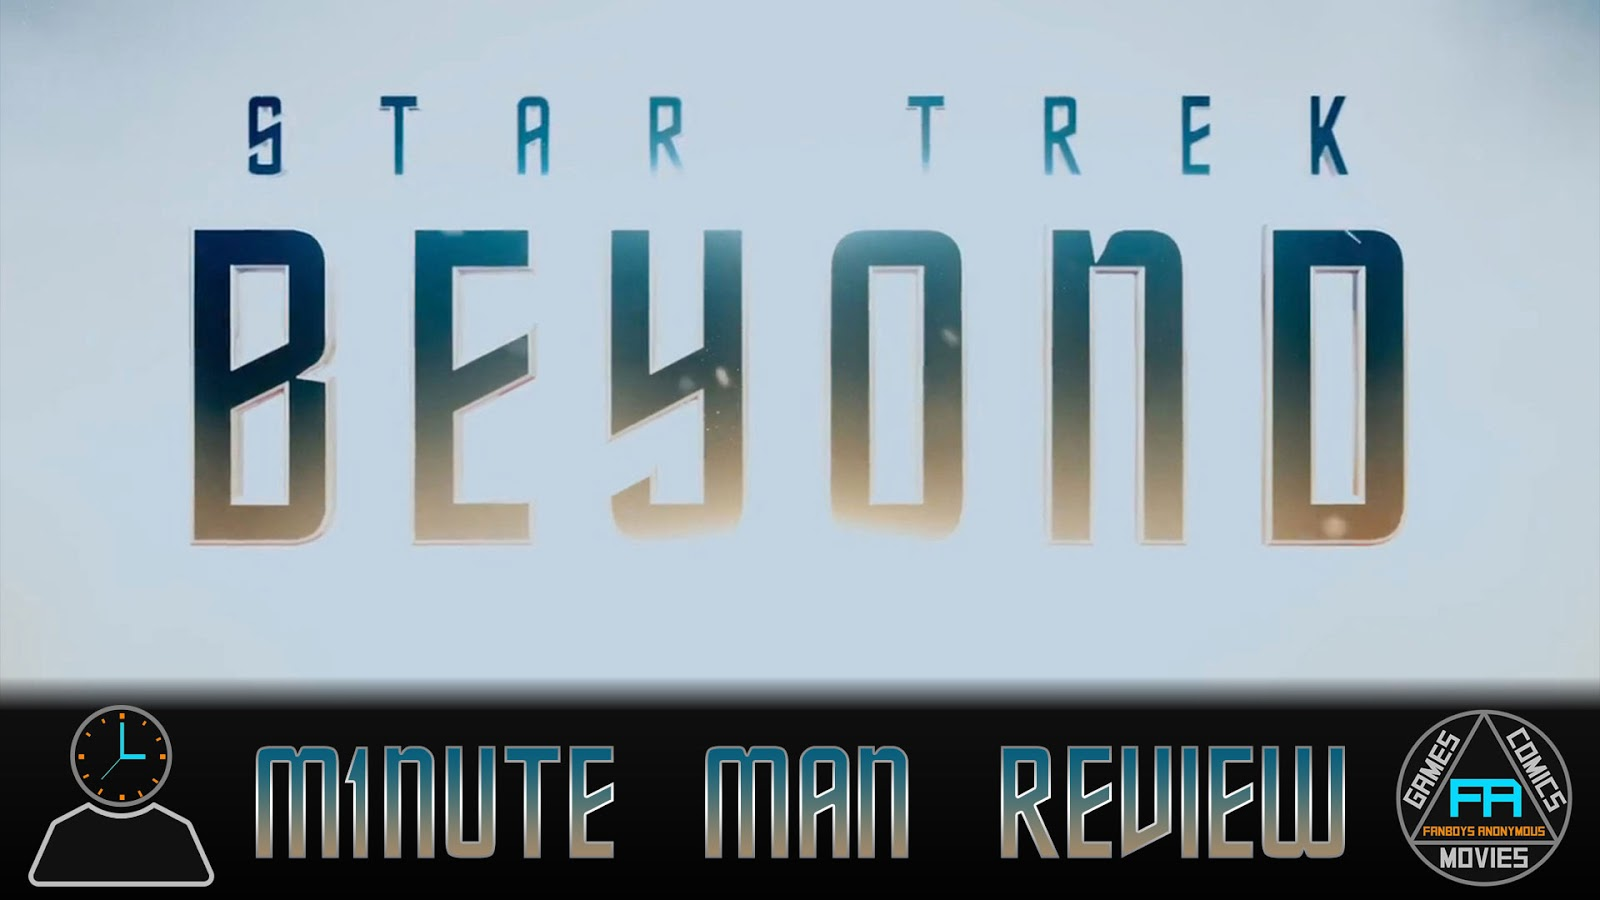 movie review Star Trek Beyond podcast